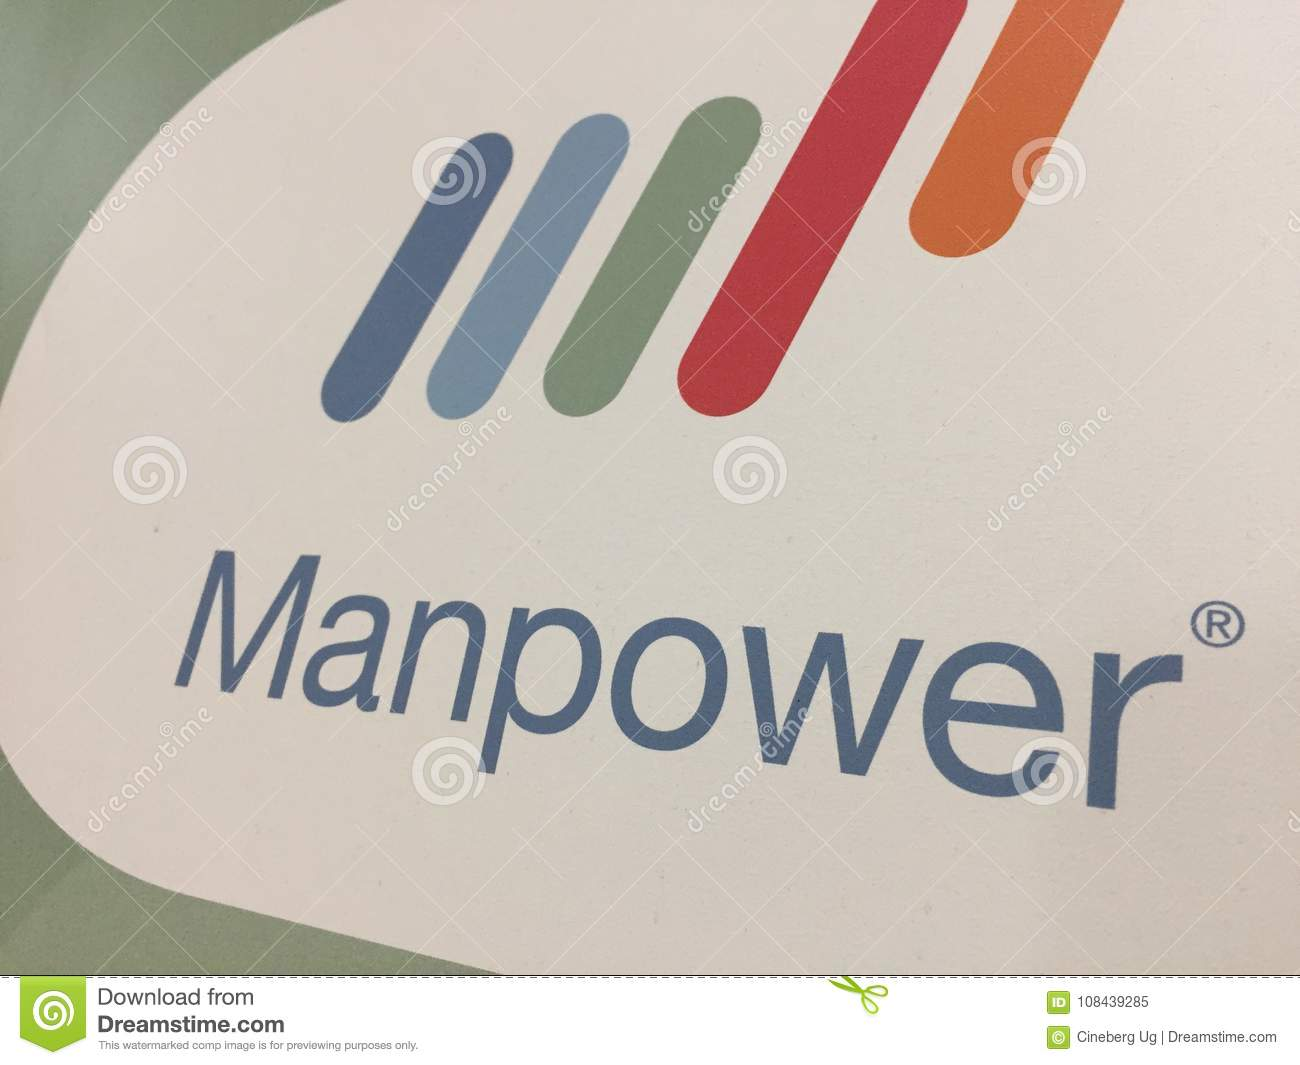 Manpower company logo editorial image  Image of office - 108439285